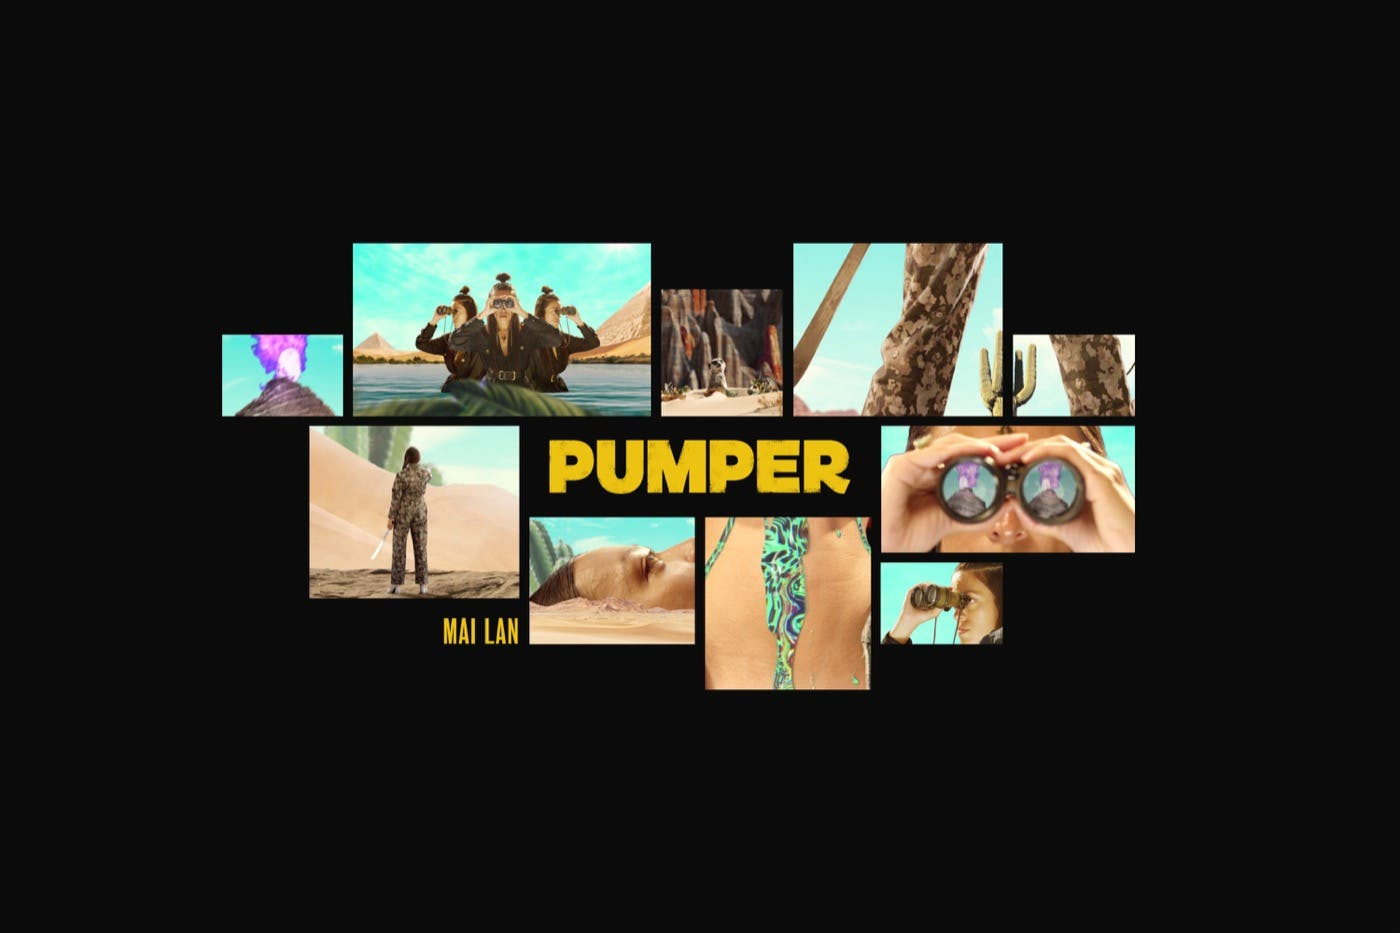 Mai Lan, Pumper — Music video